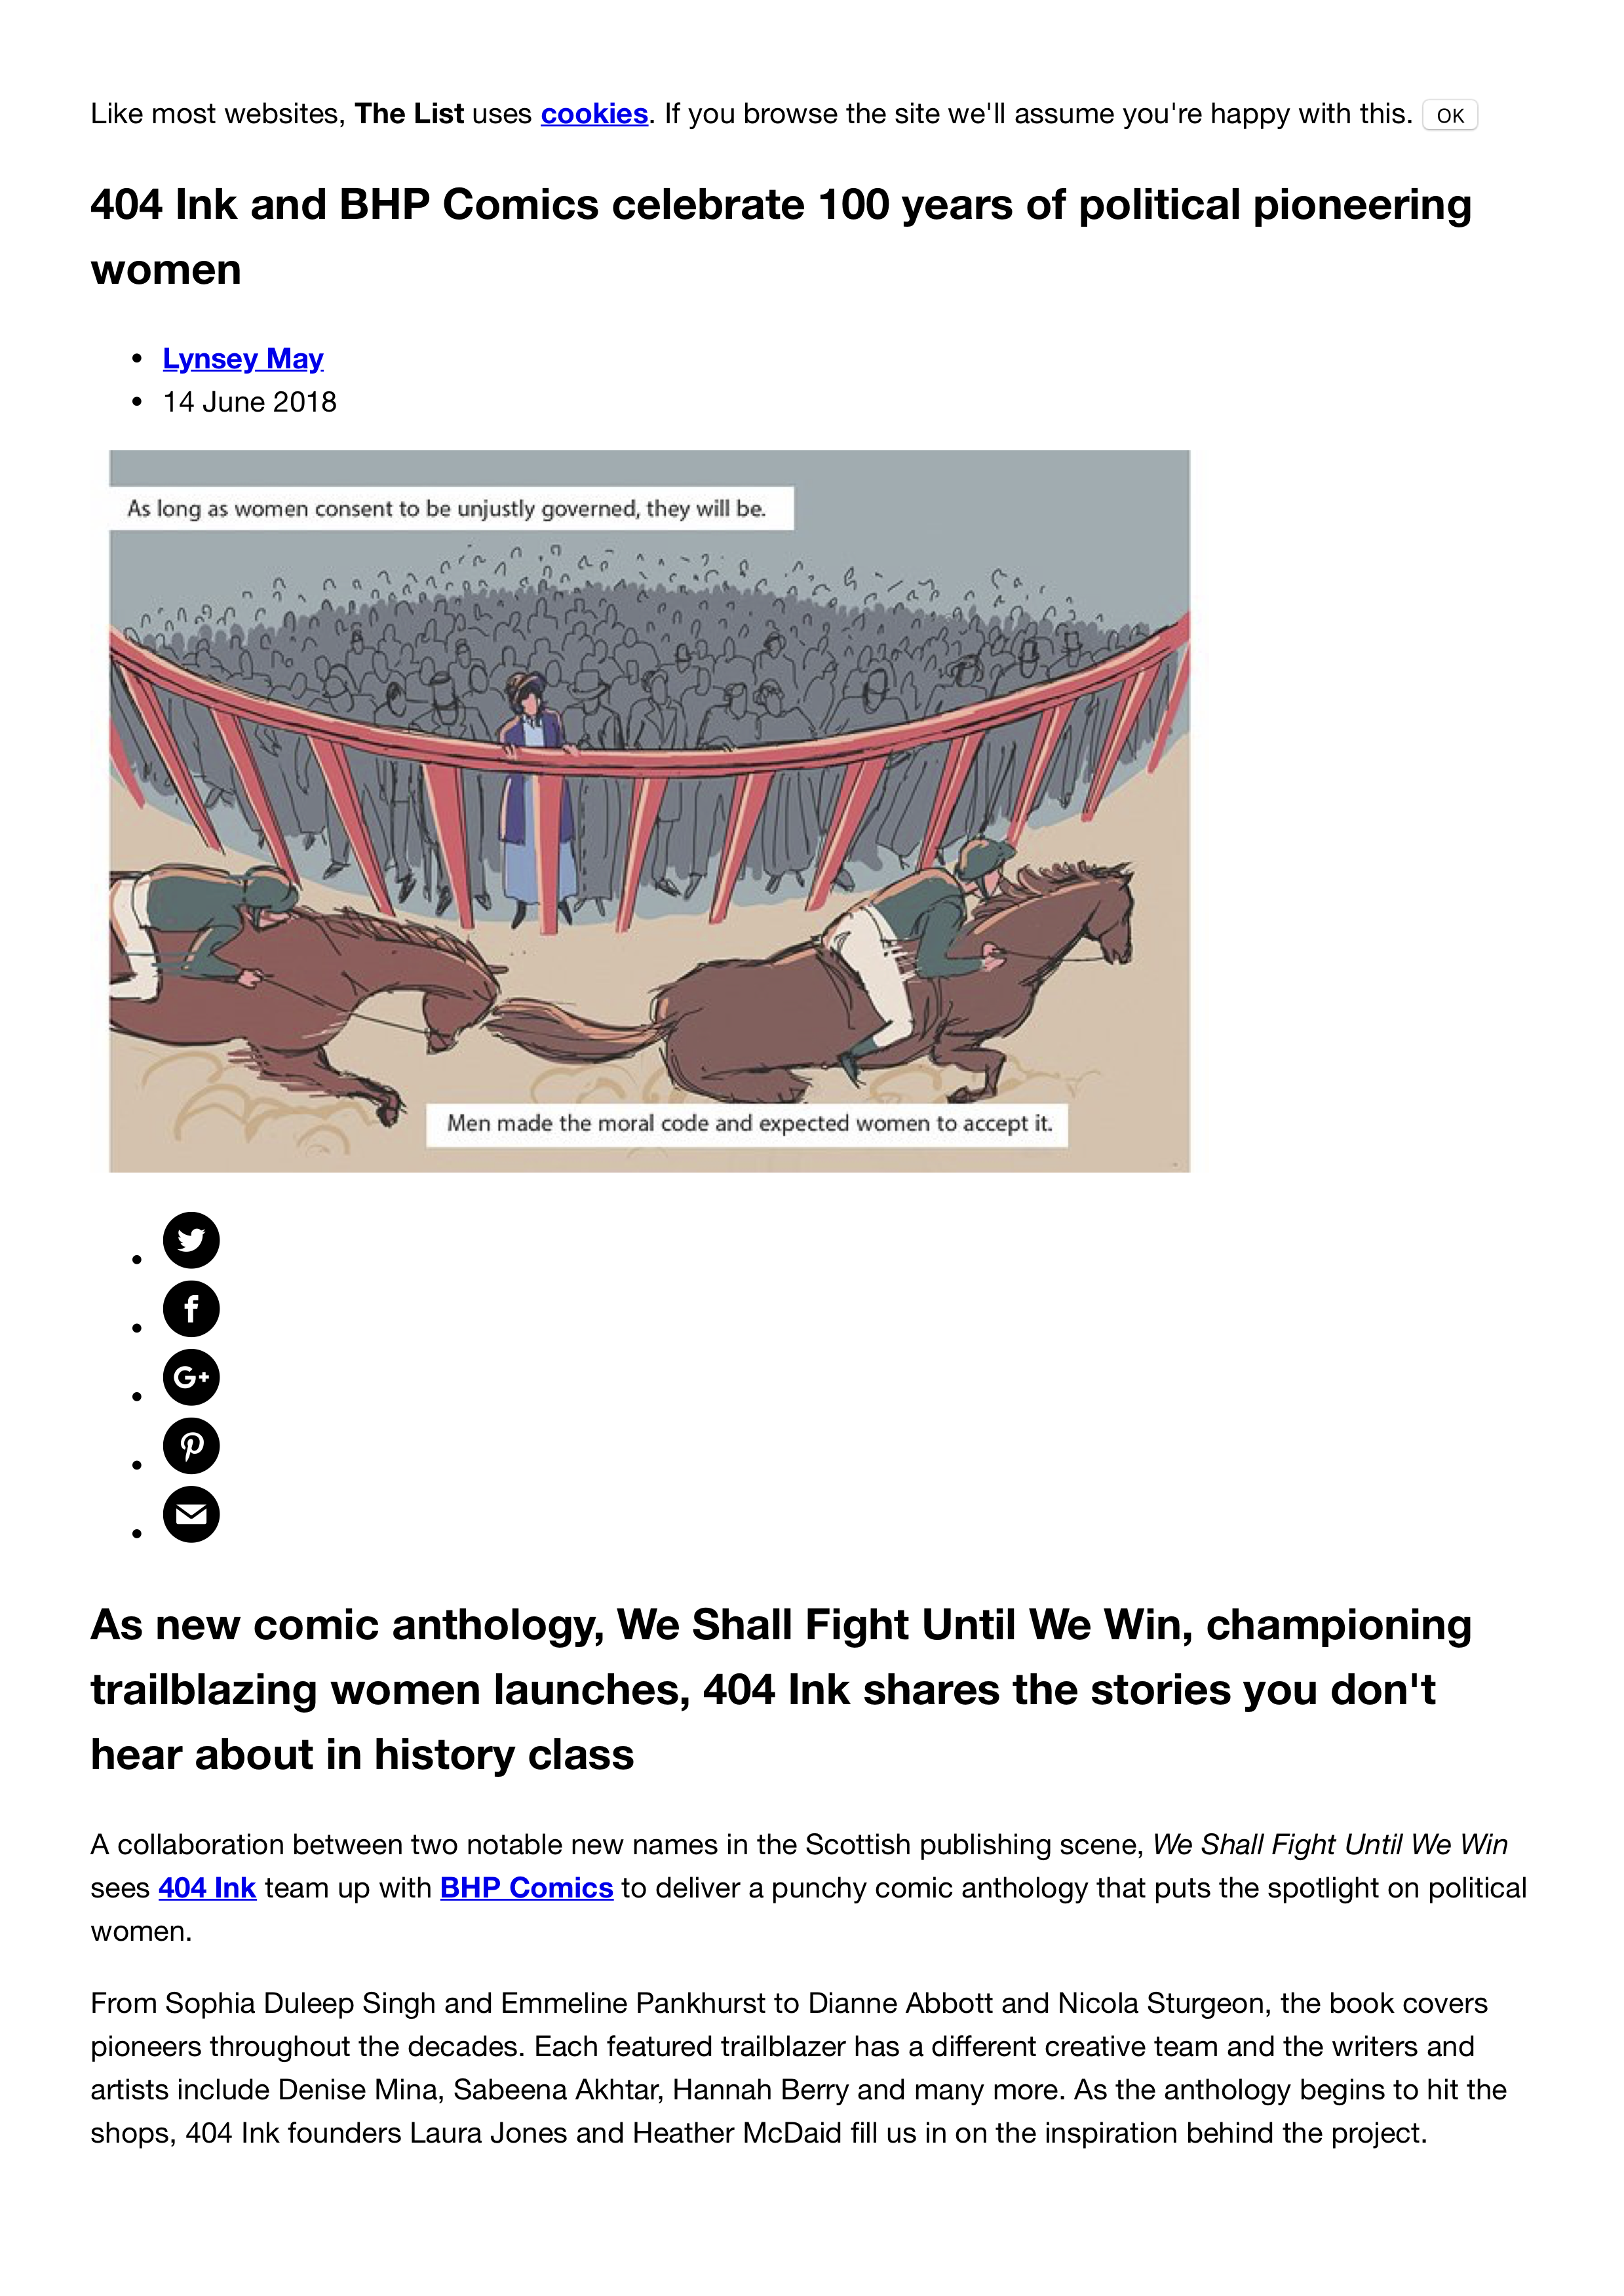 404 Ink and BHP Comics celebrate 100 years of political pioneering women _ The List 1.png